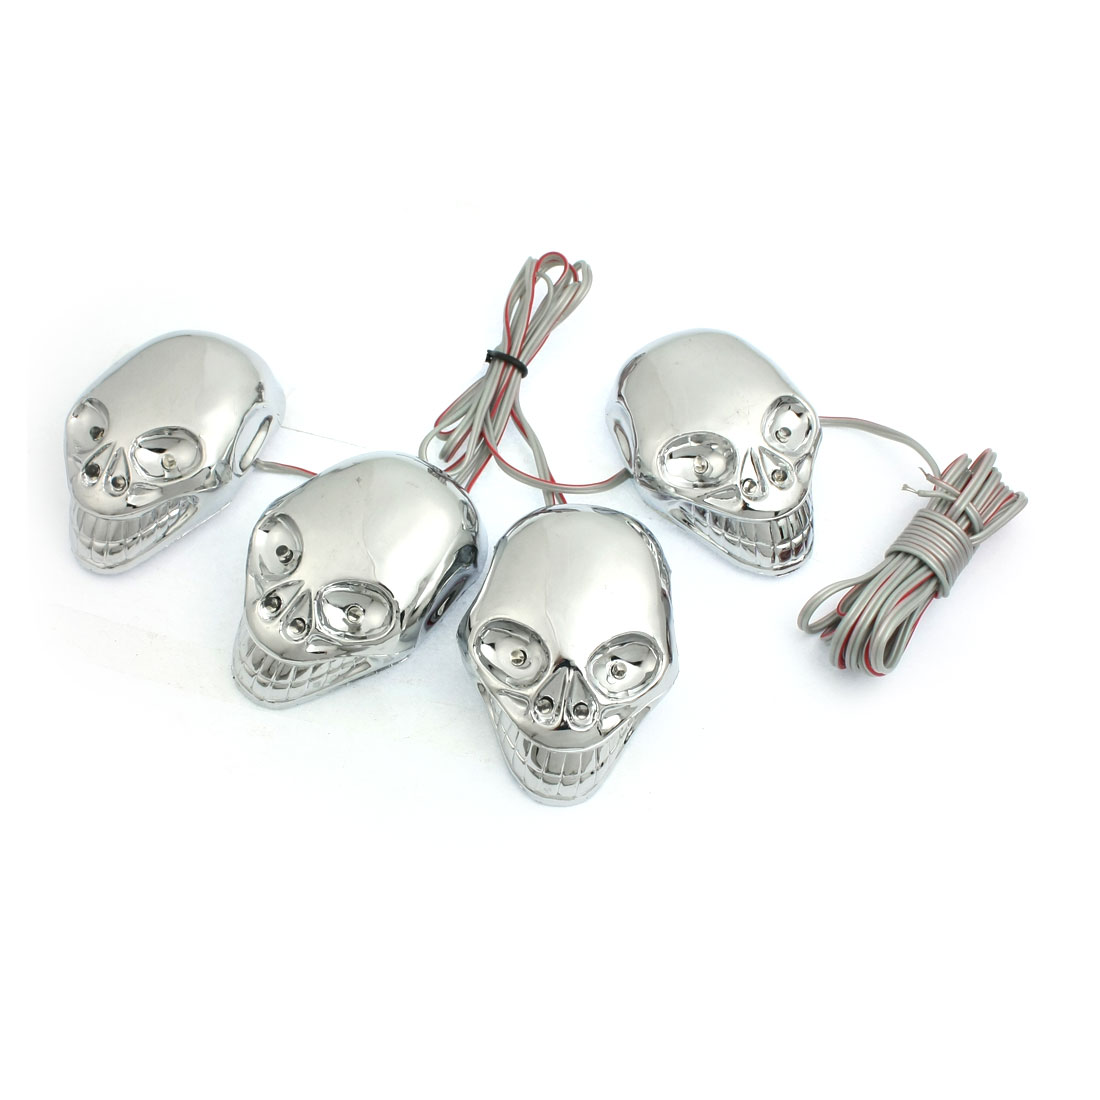 Car Motorcycle Plastic 4 Skull Tri Color Flash Light Lamp Decor Ornament